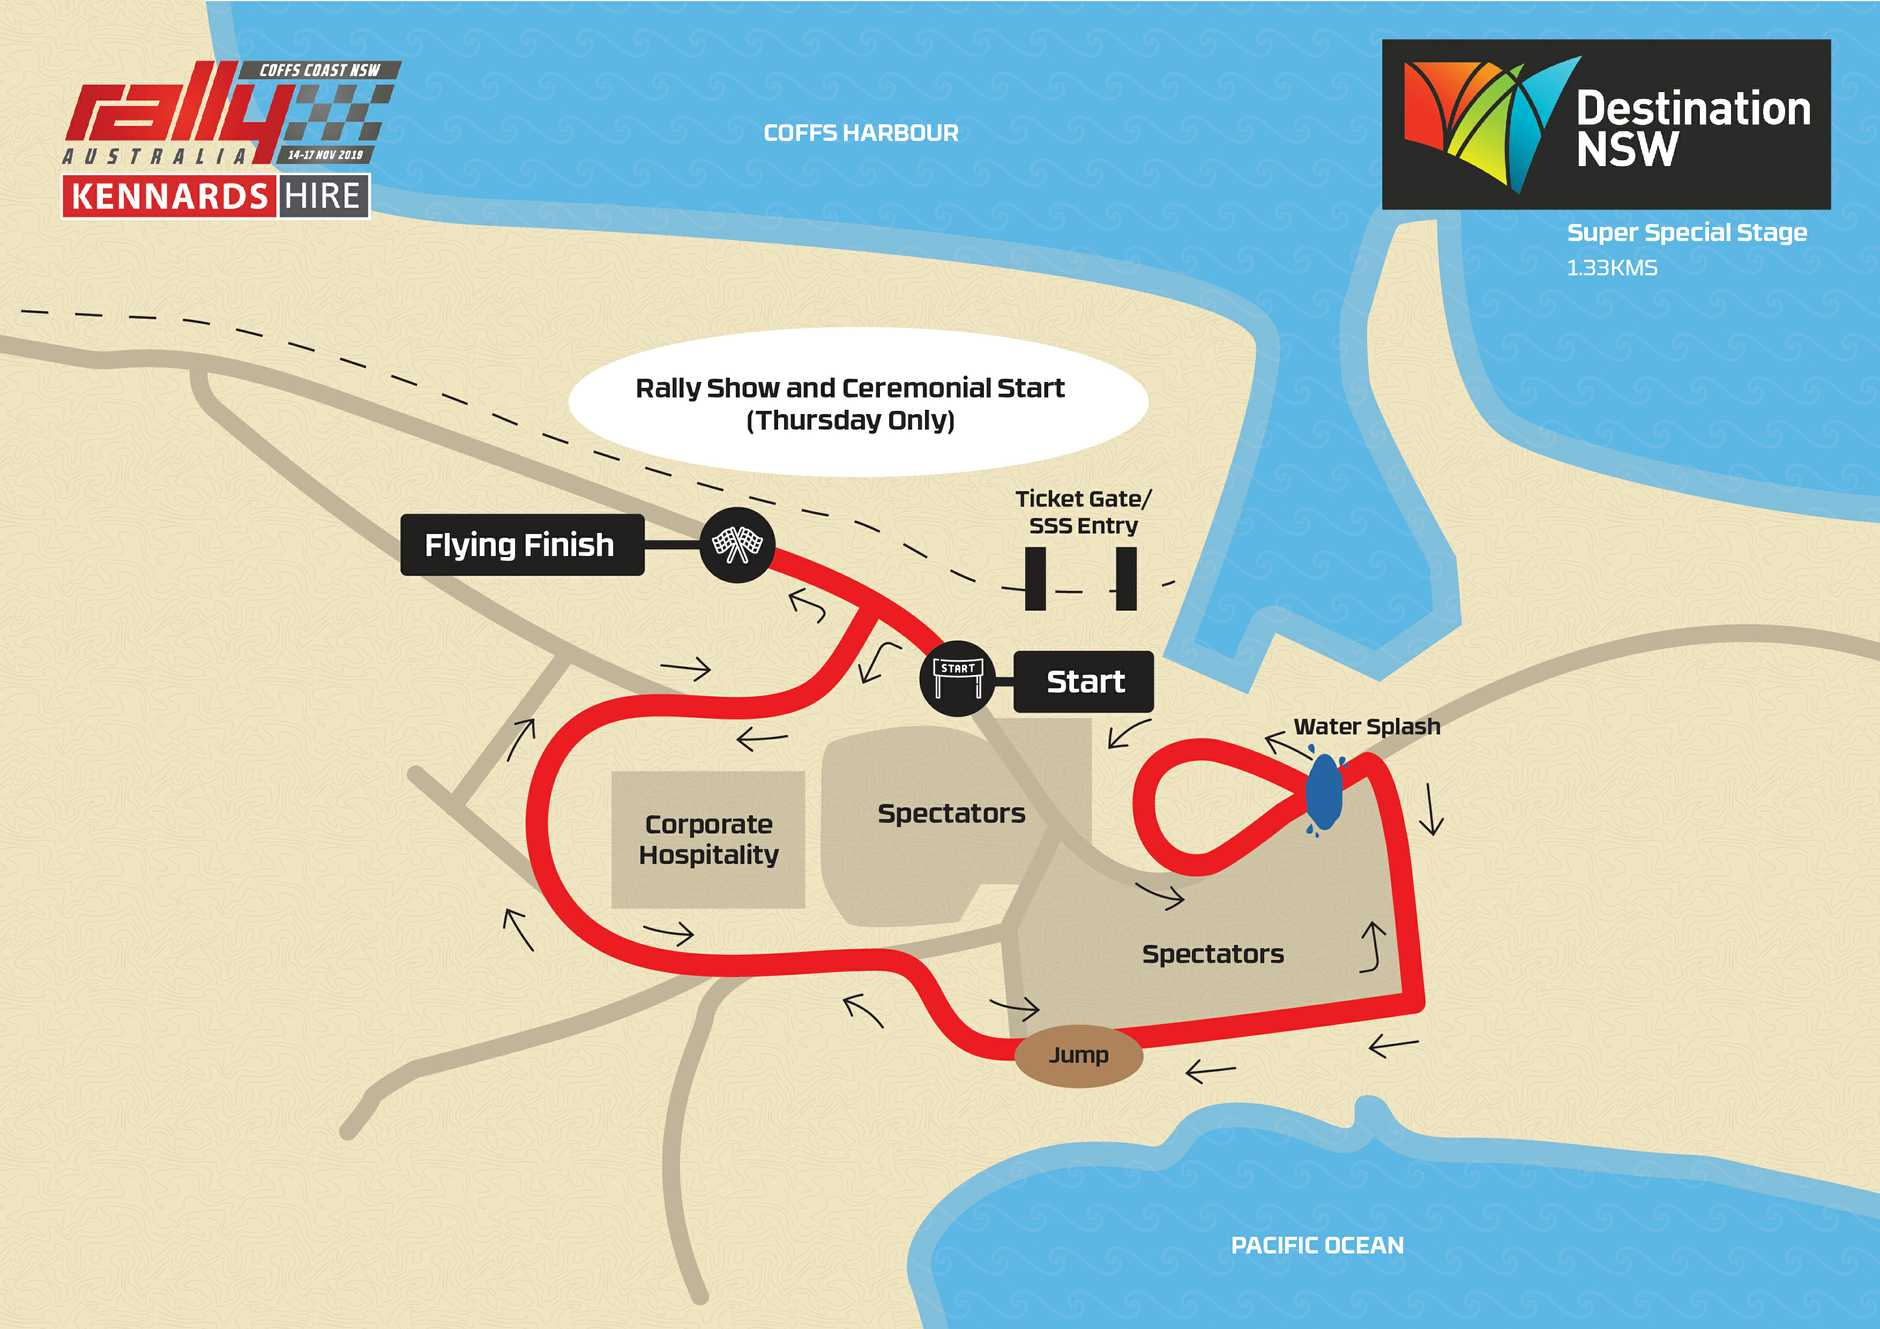 The super special stages of Kennards Hire Rally Australia will be held on the Coffs Harbour Jetty Foreshores with a few modifications this year to improve the spectator vantage points.